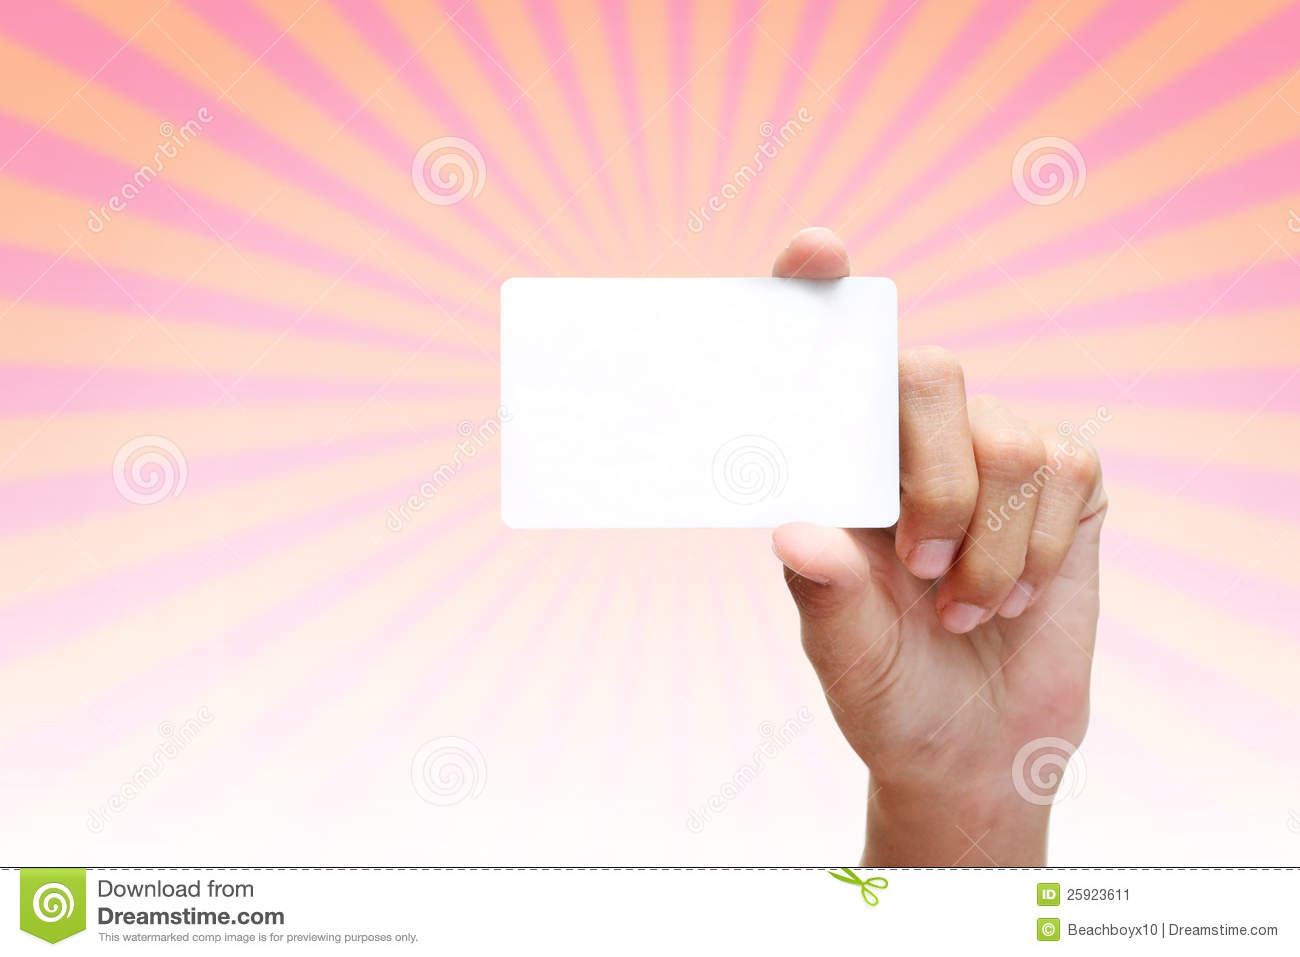 Hand holding blank white business card